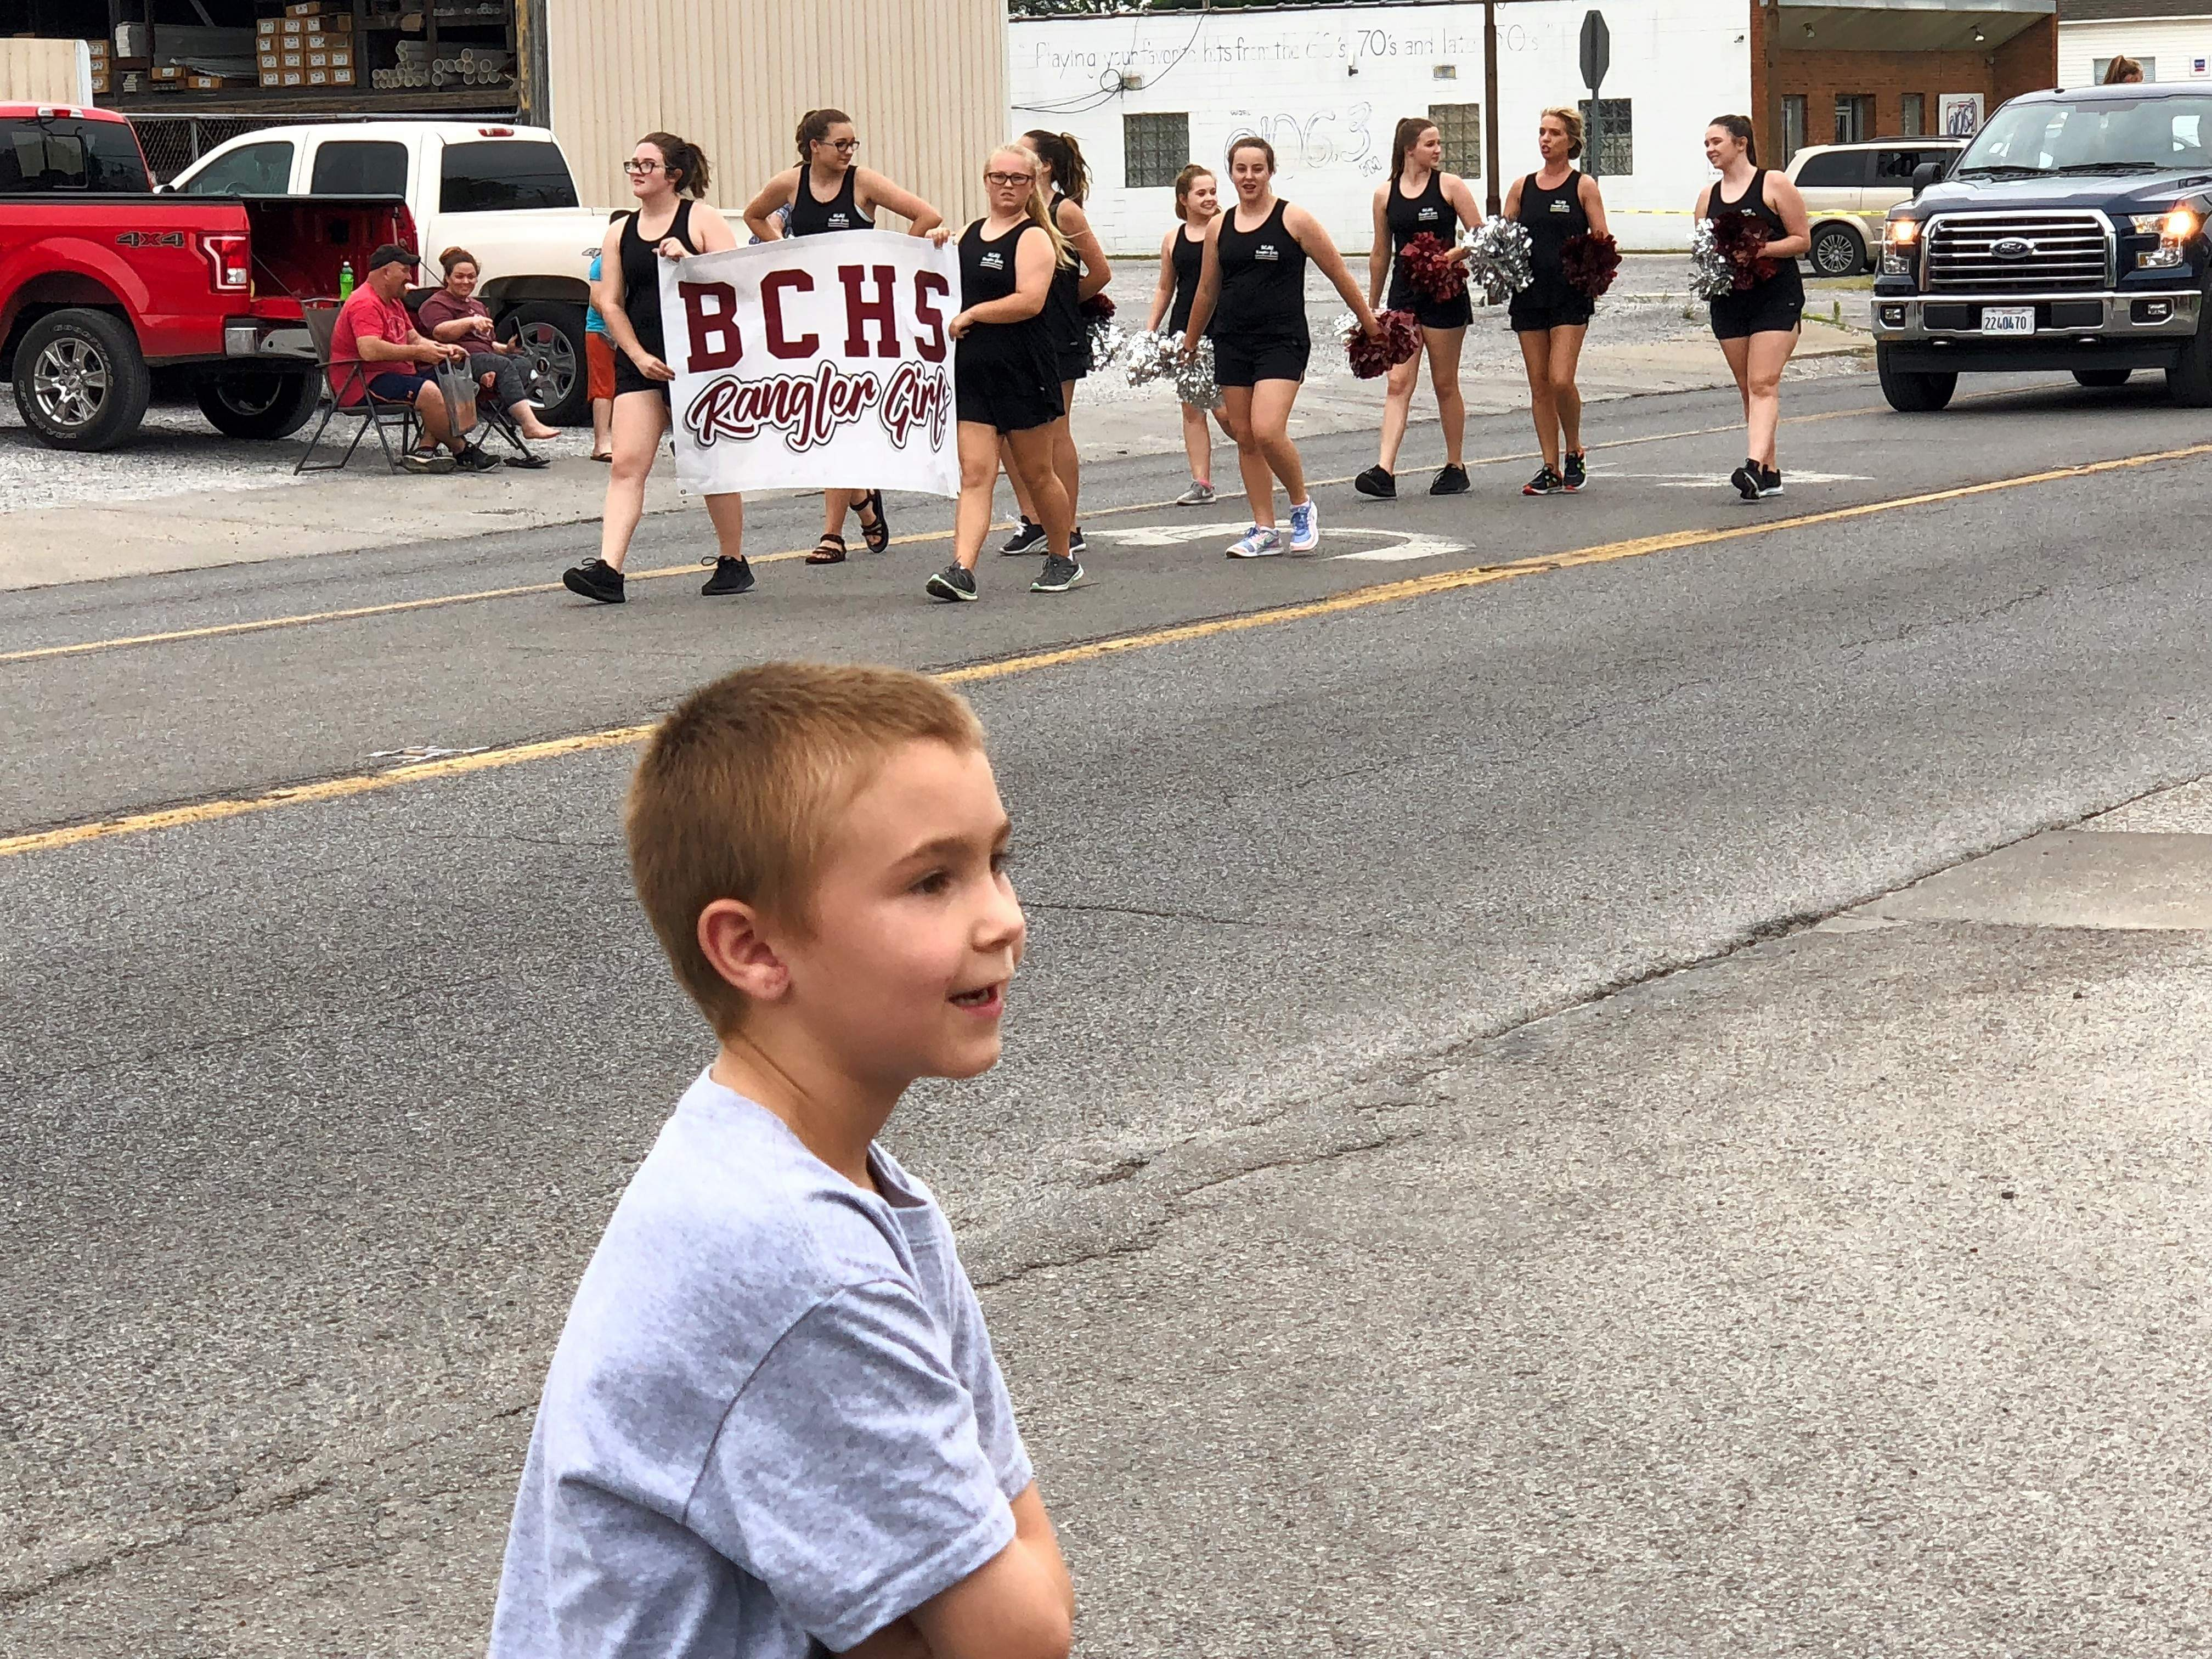 Chase Faltner watches as the BCHS Ranger Girls pass by during the Farm City Days parade Saturday in Benton. The 7-year-old from Christopher said his favorite parts of the parade are the 'candy and bid tractors.'